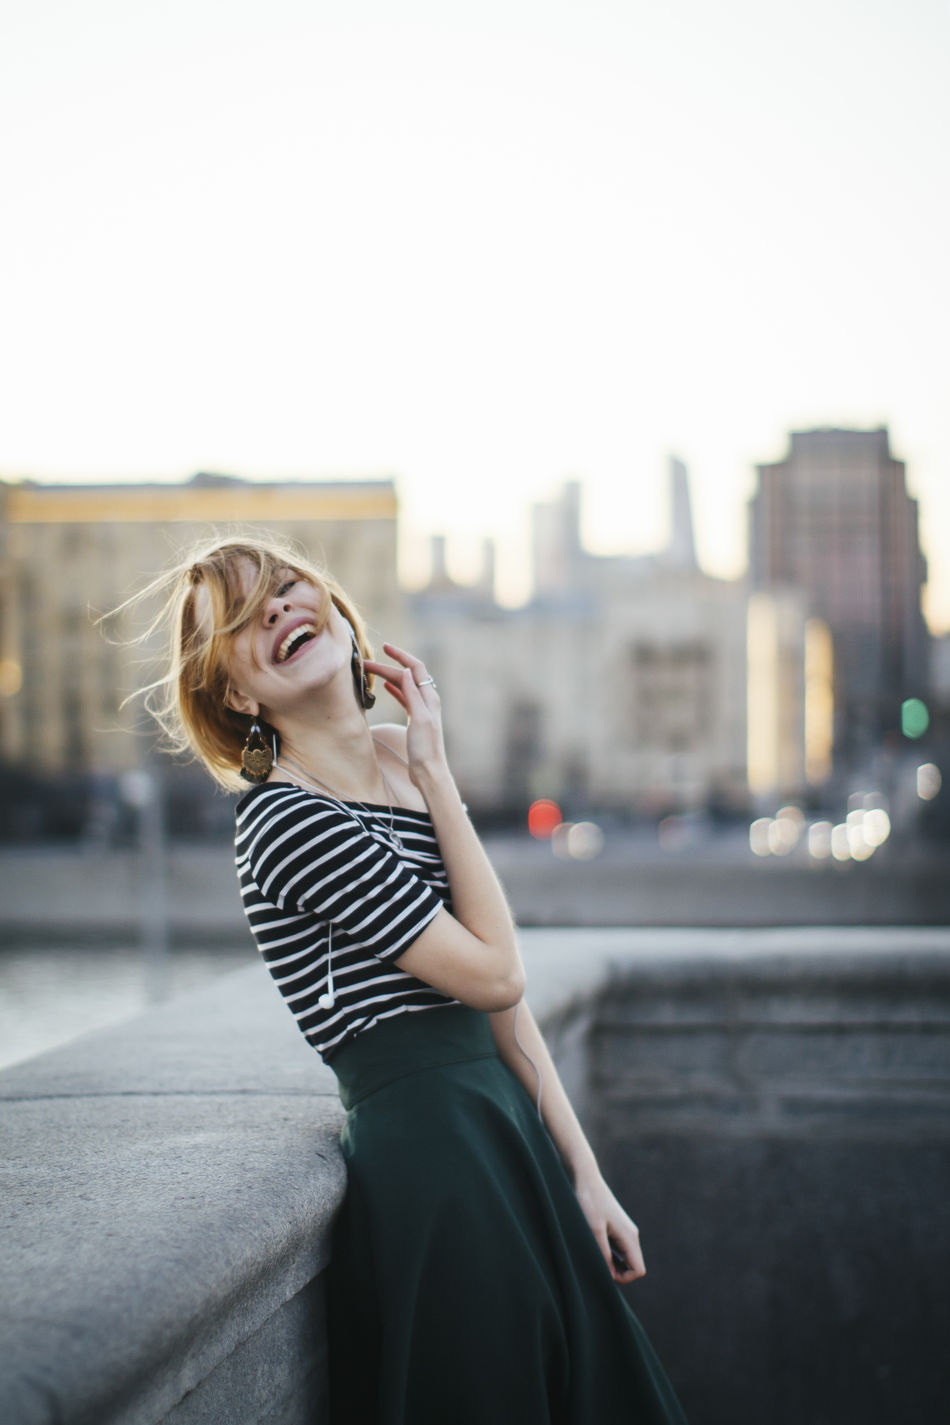 Beautiful stock photos of mädchen, 16-17 Years, Casual Clothing, Caucasian Ethnicity, Cheerful